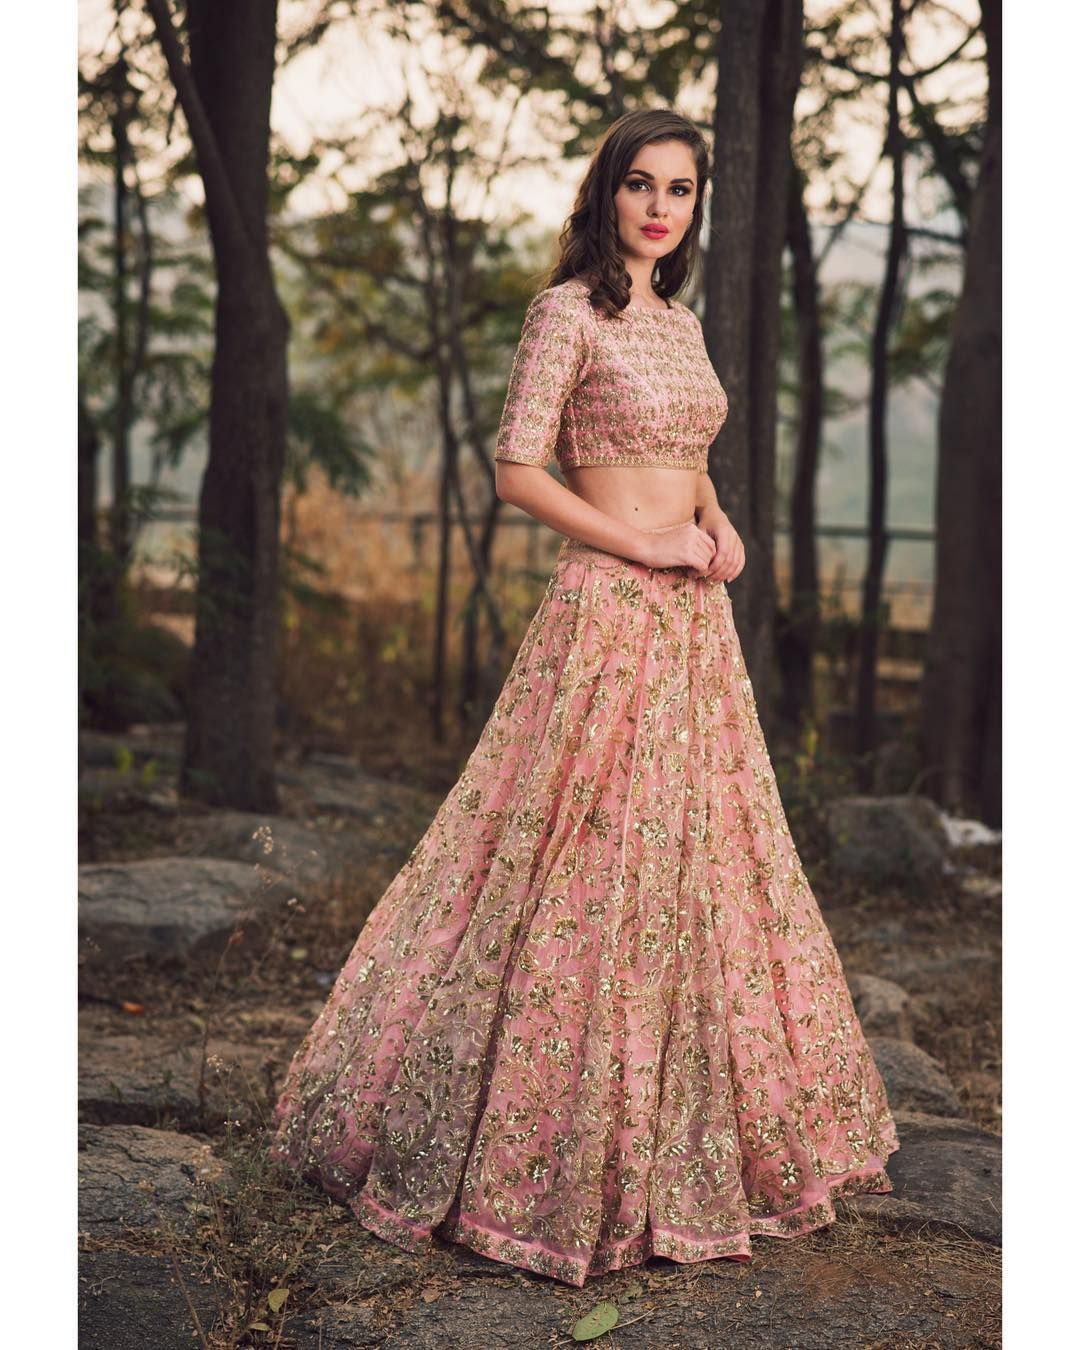 ac0763264 Beautiful blush pink color designer lehenga and blouse with hand ...